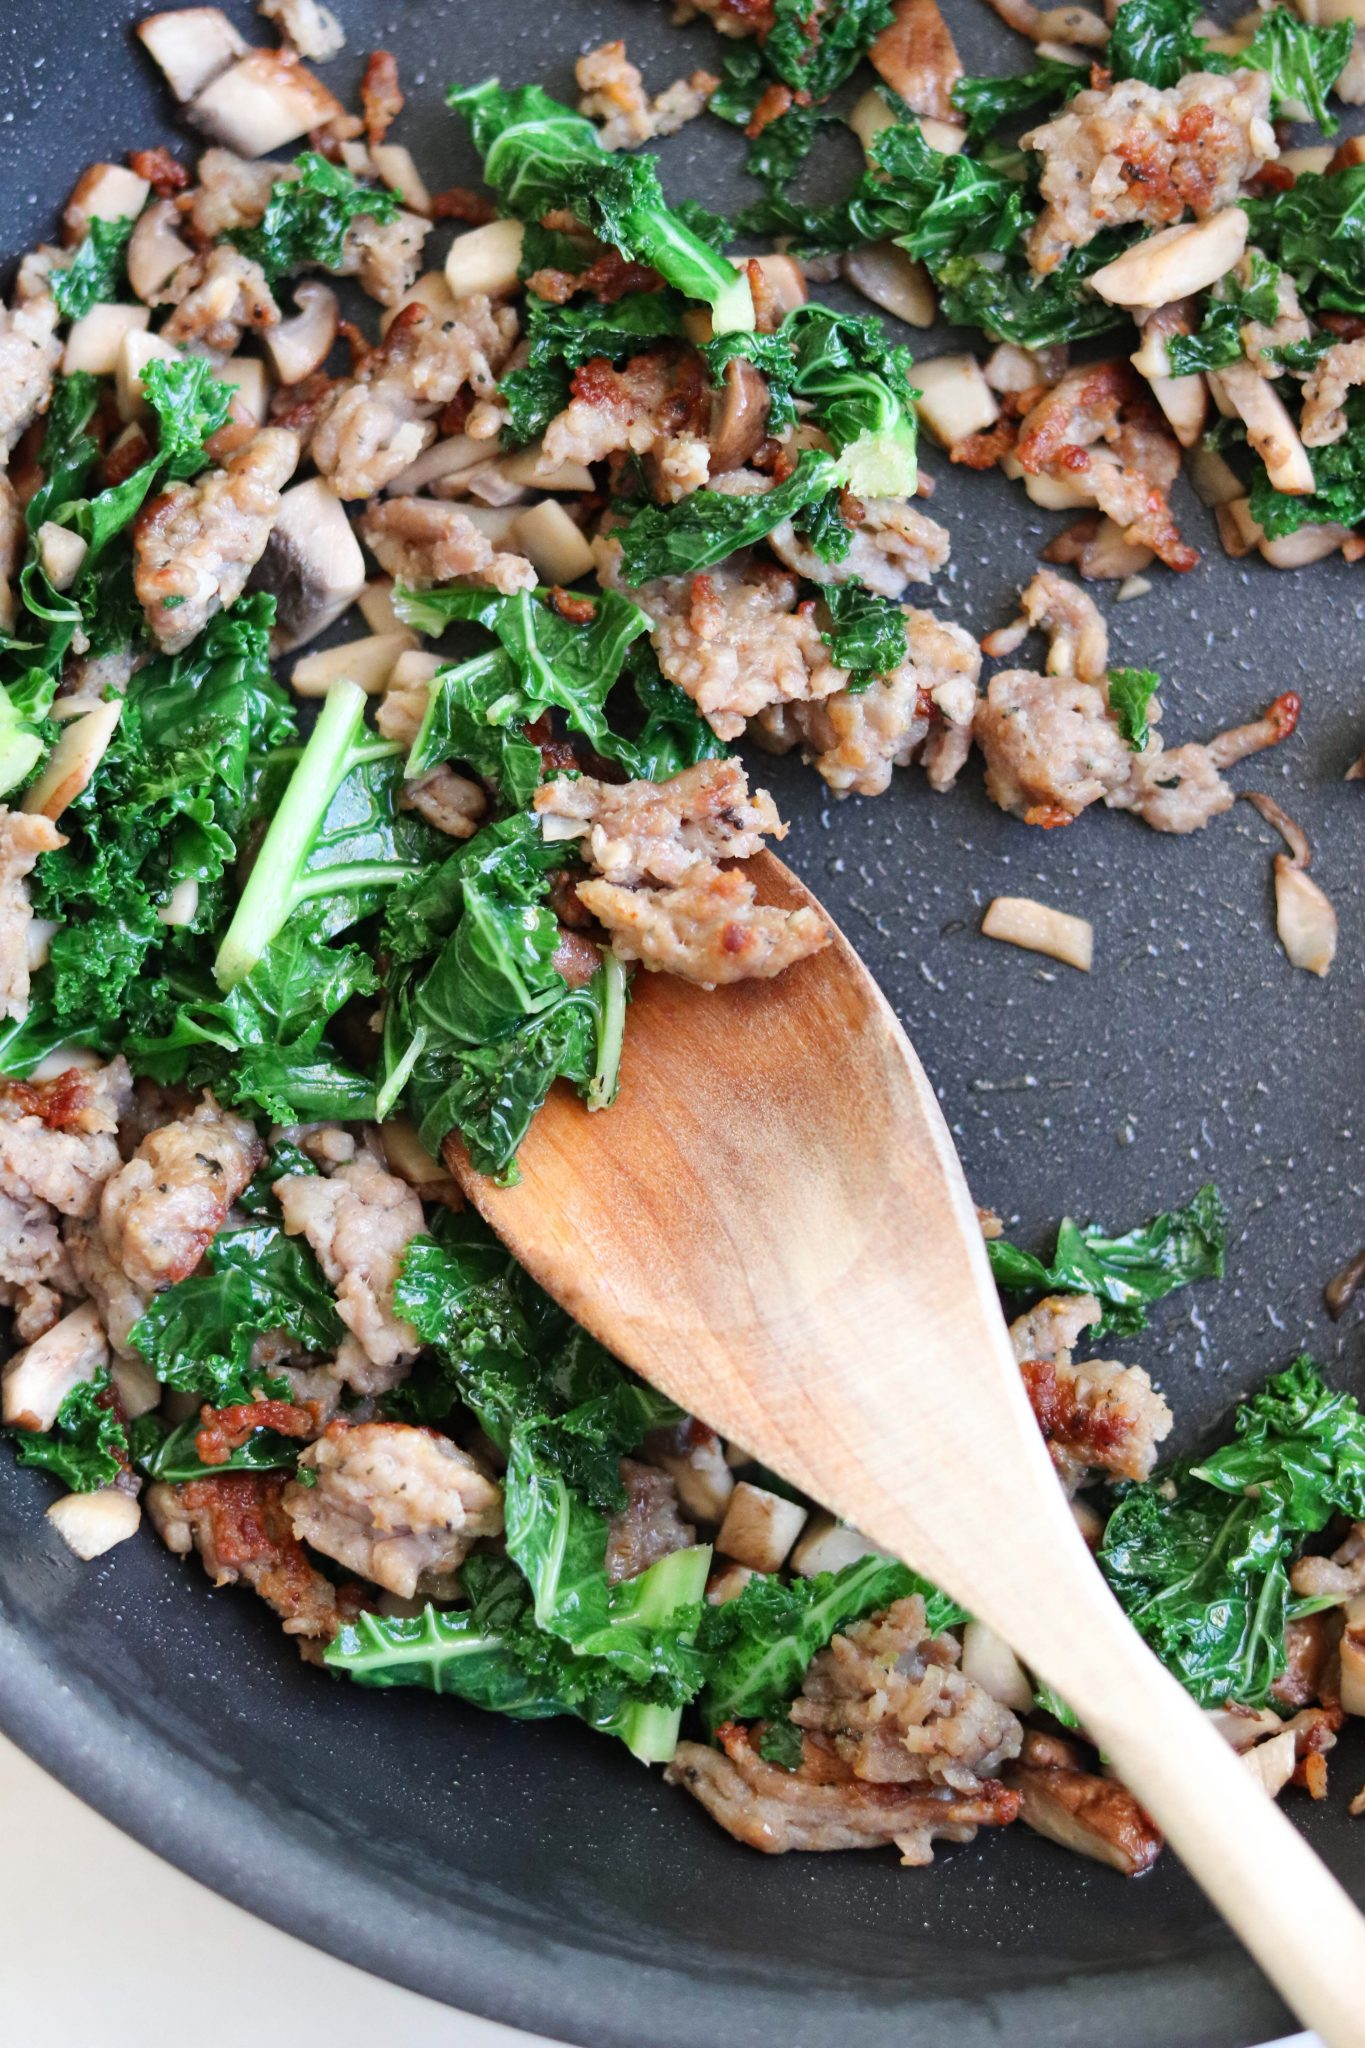 A close up shot of a skillet with ground sausage, kale, and mushrooms cooking.